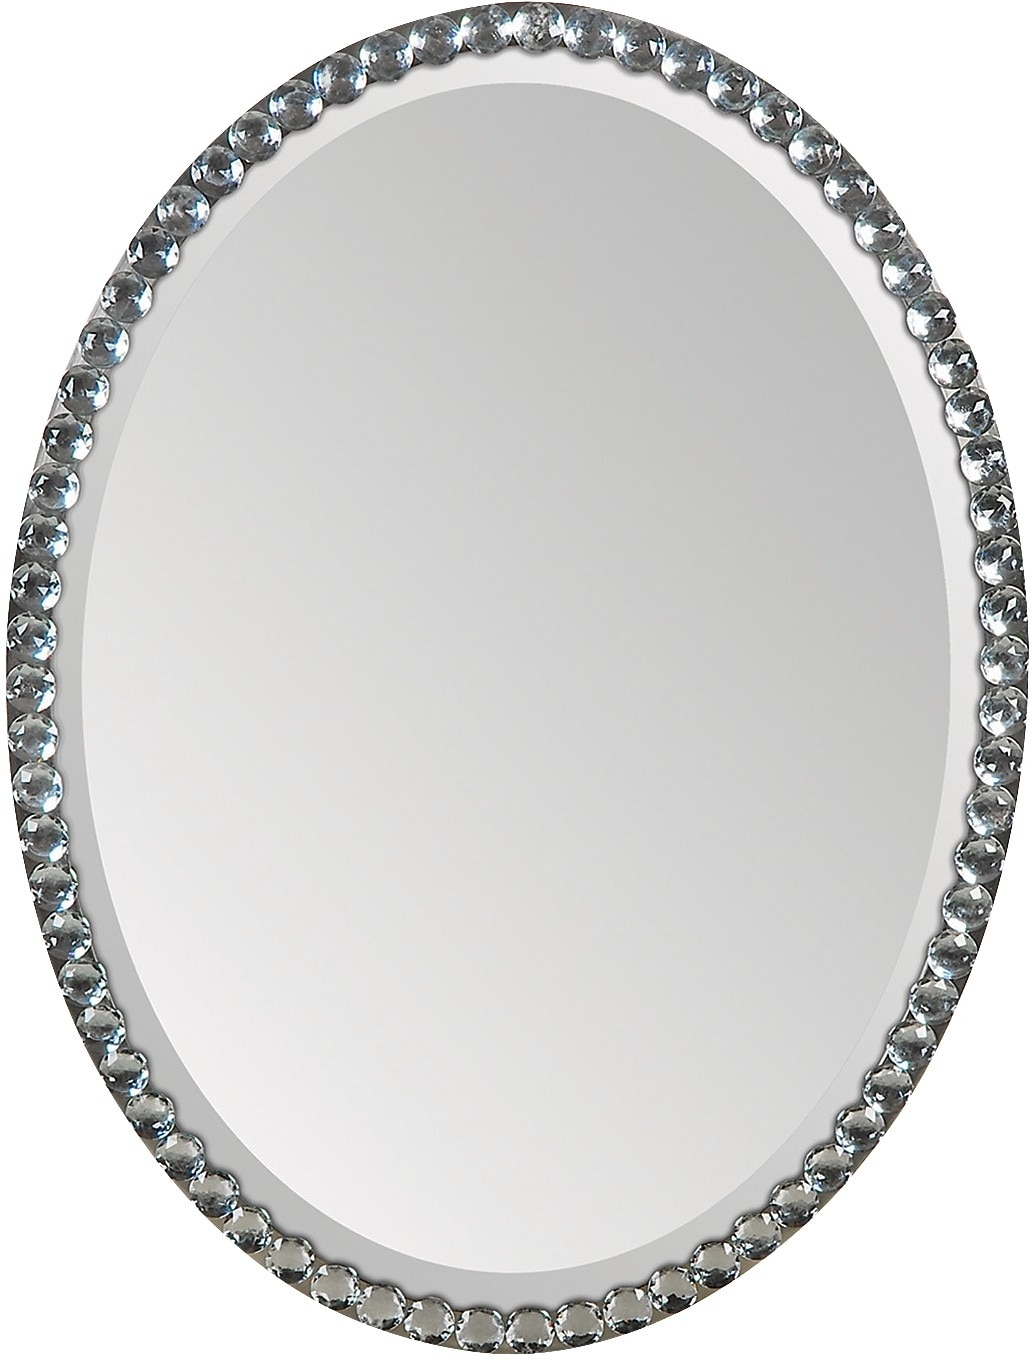 Home Accessories - Dublin Crystal & Silver Mirror